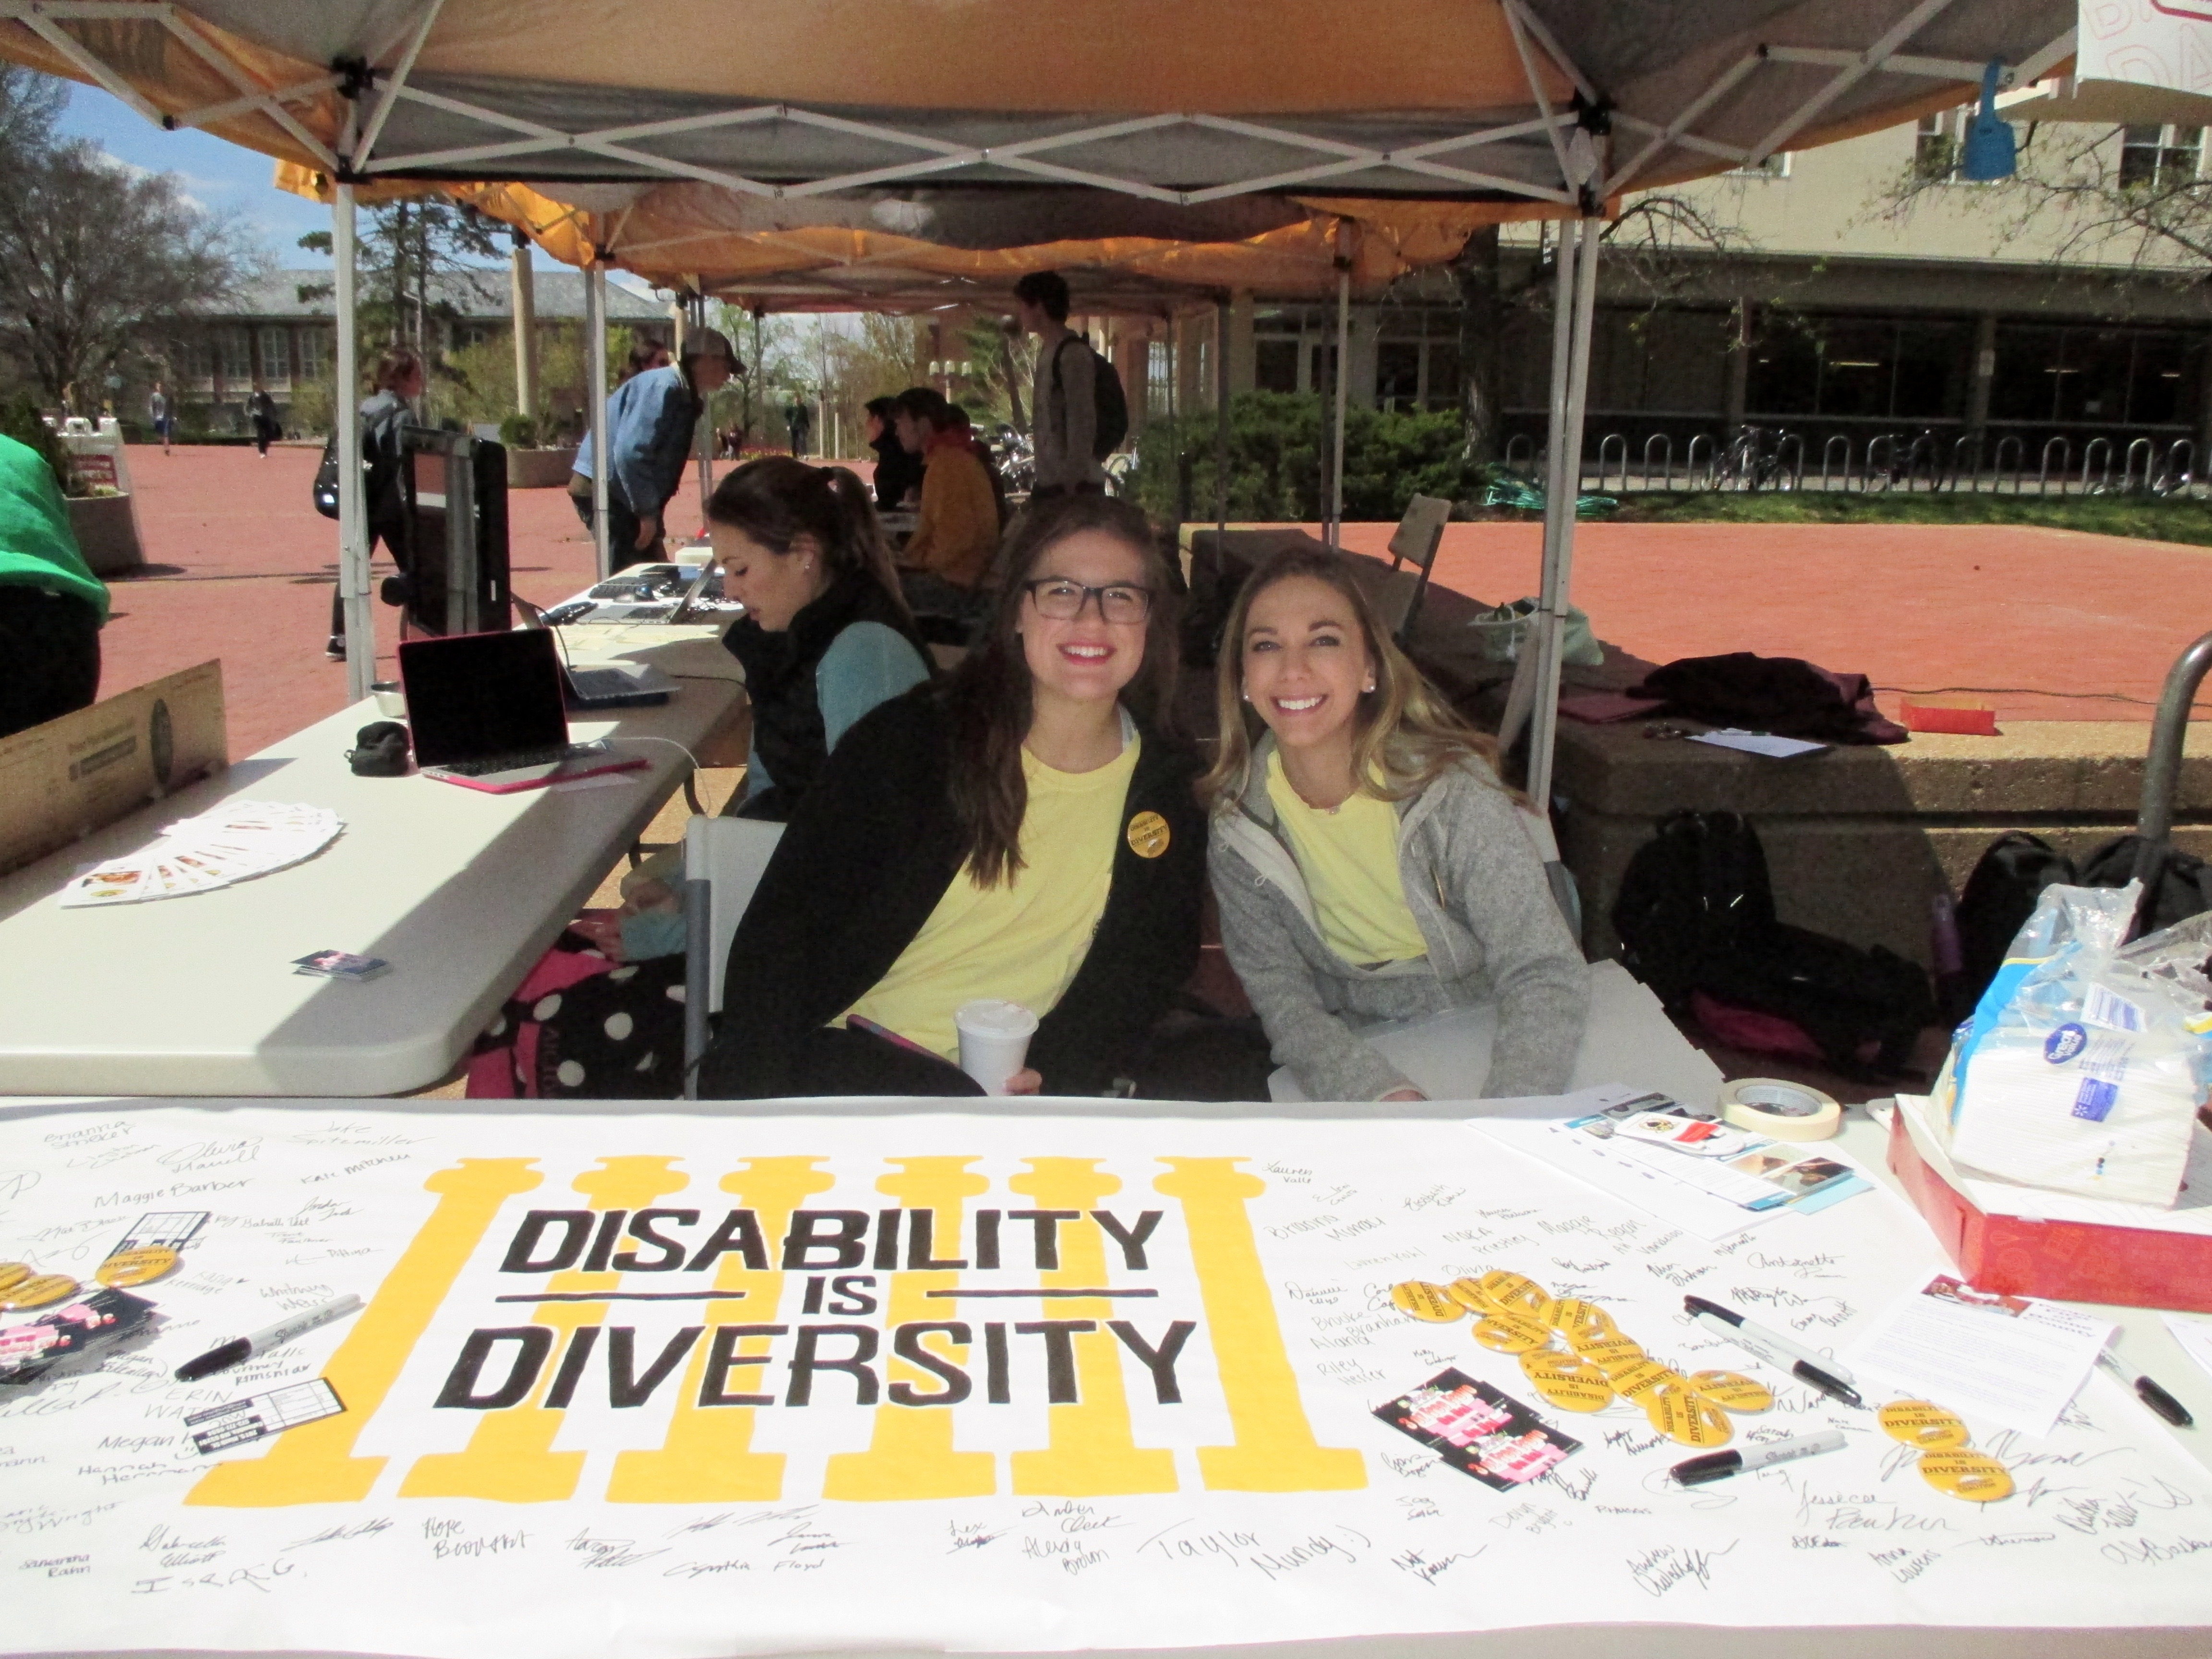 Students tabling for disability is diversity